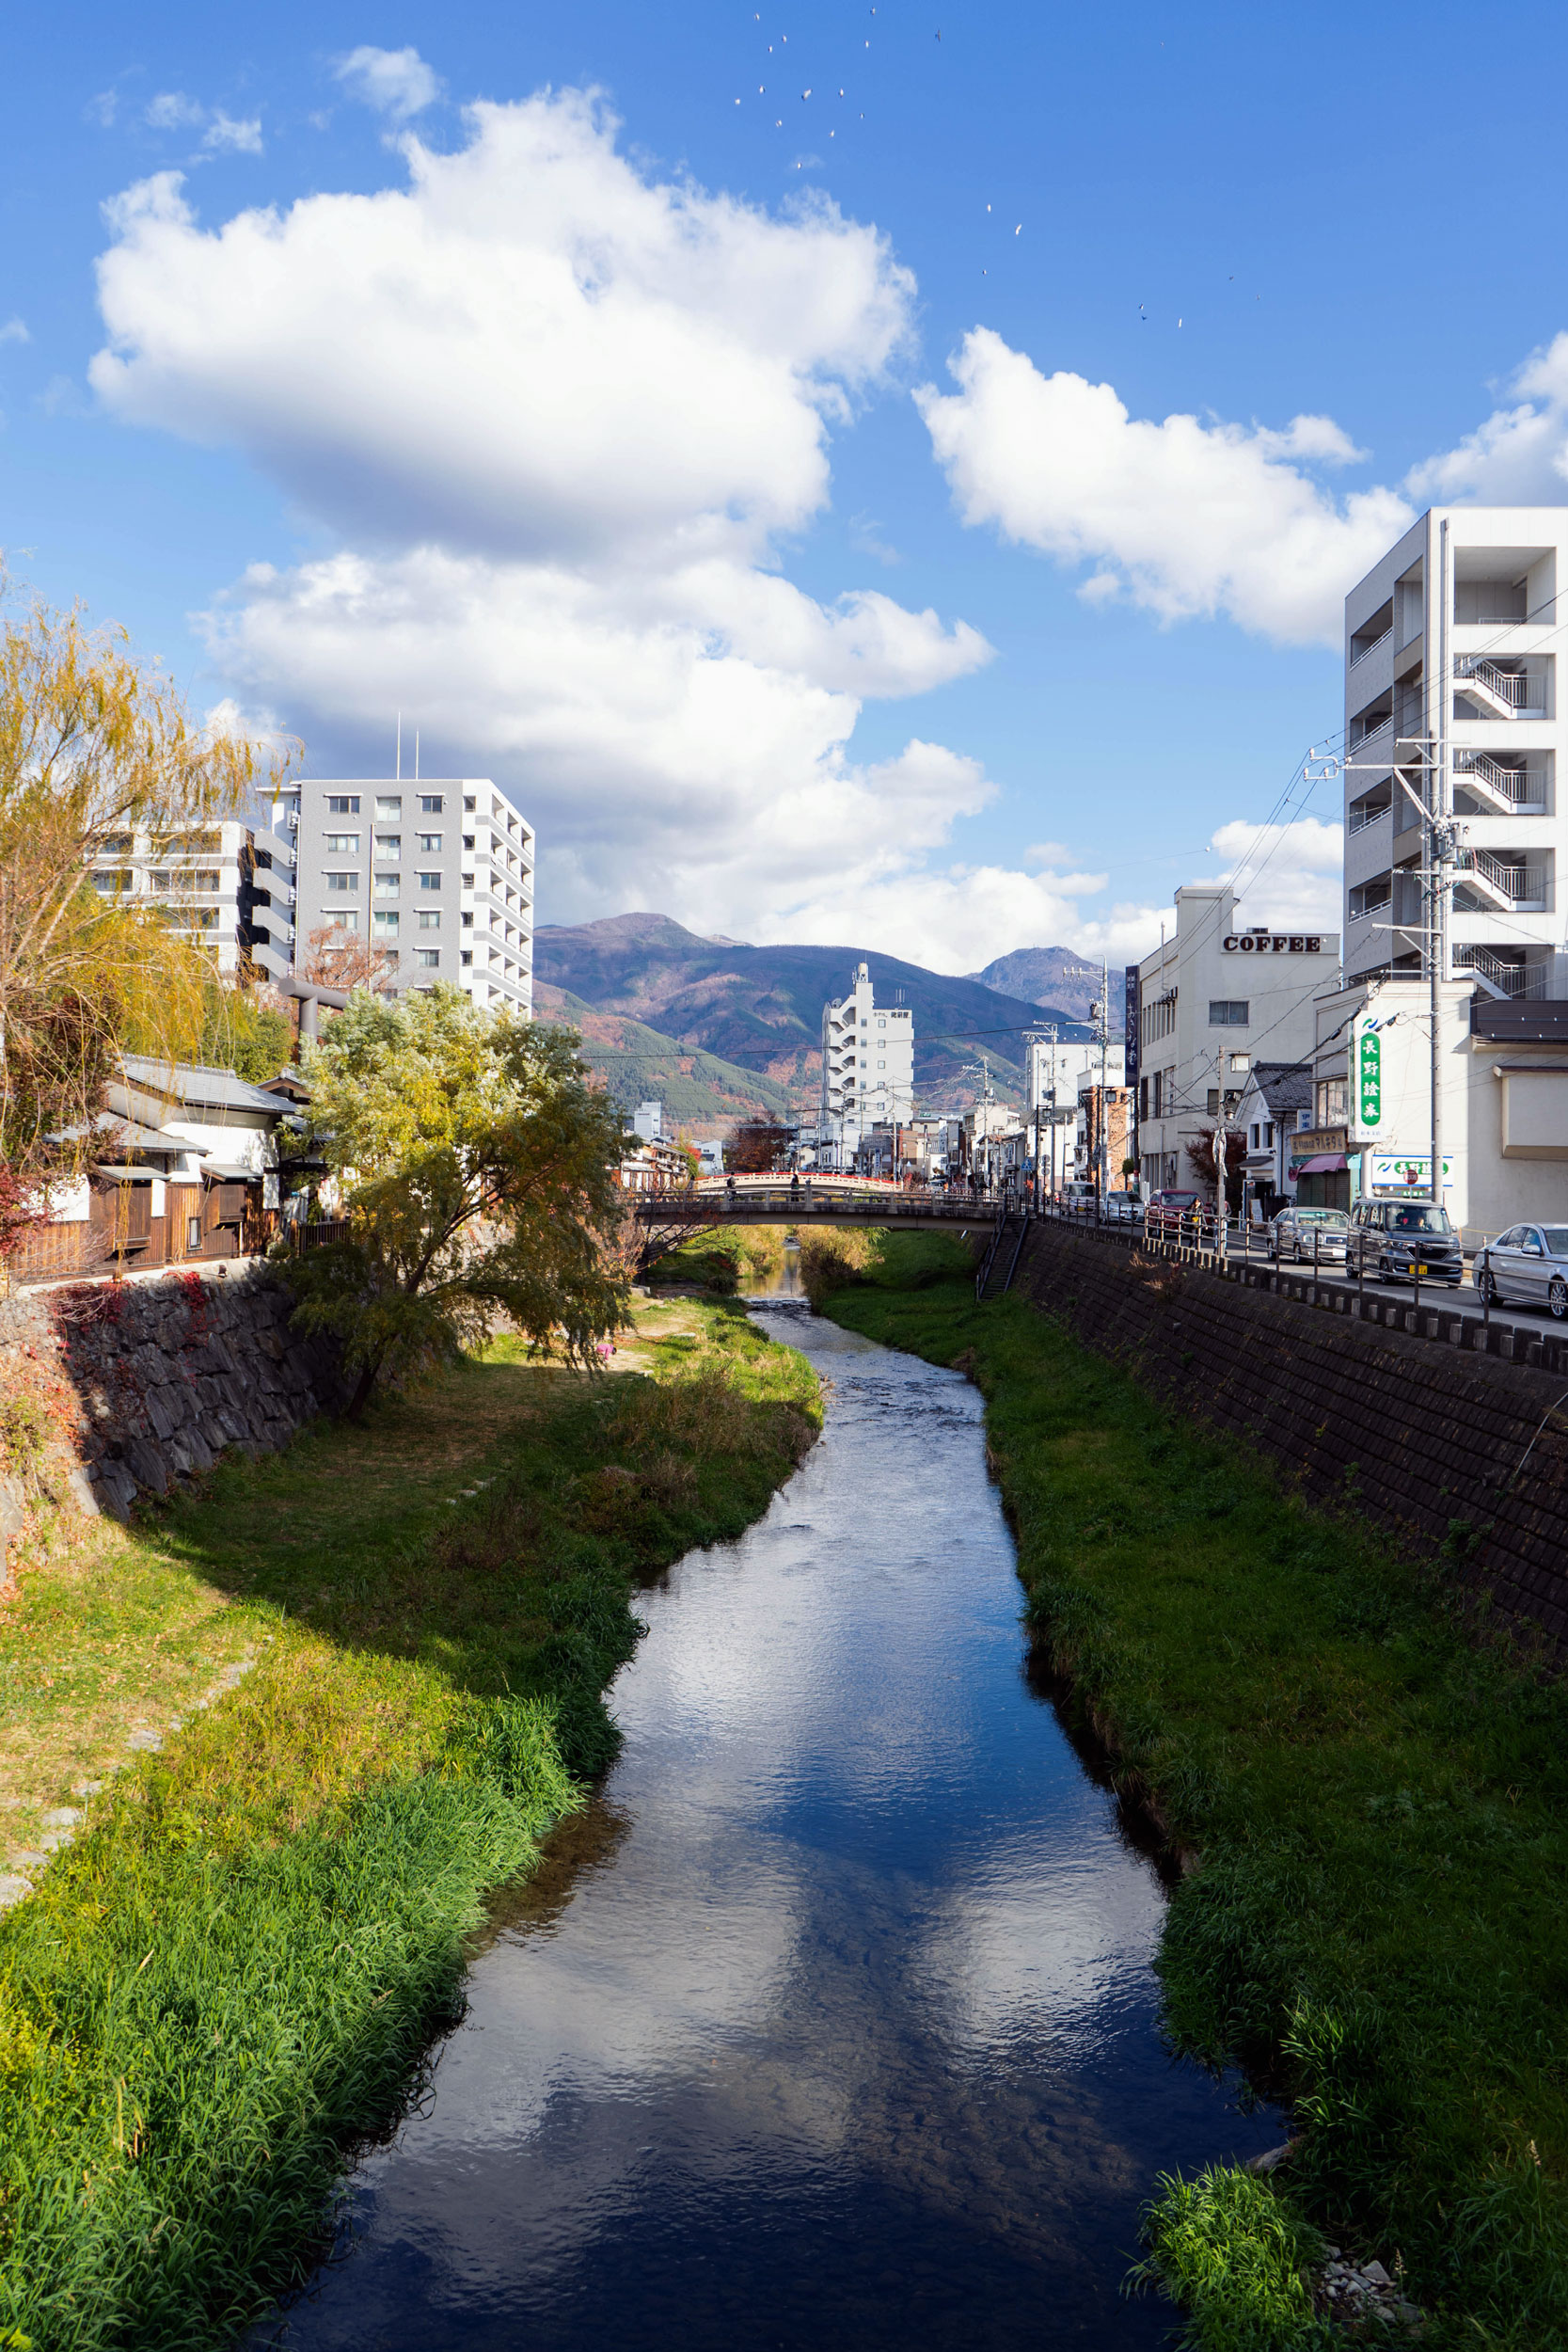 The Ta River, next to Nakamachi Street with old merchant shops